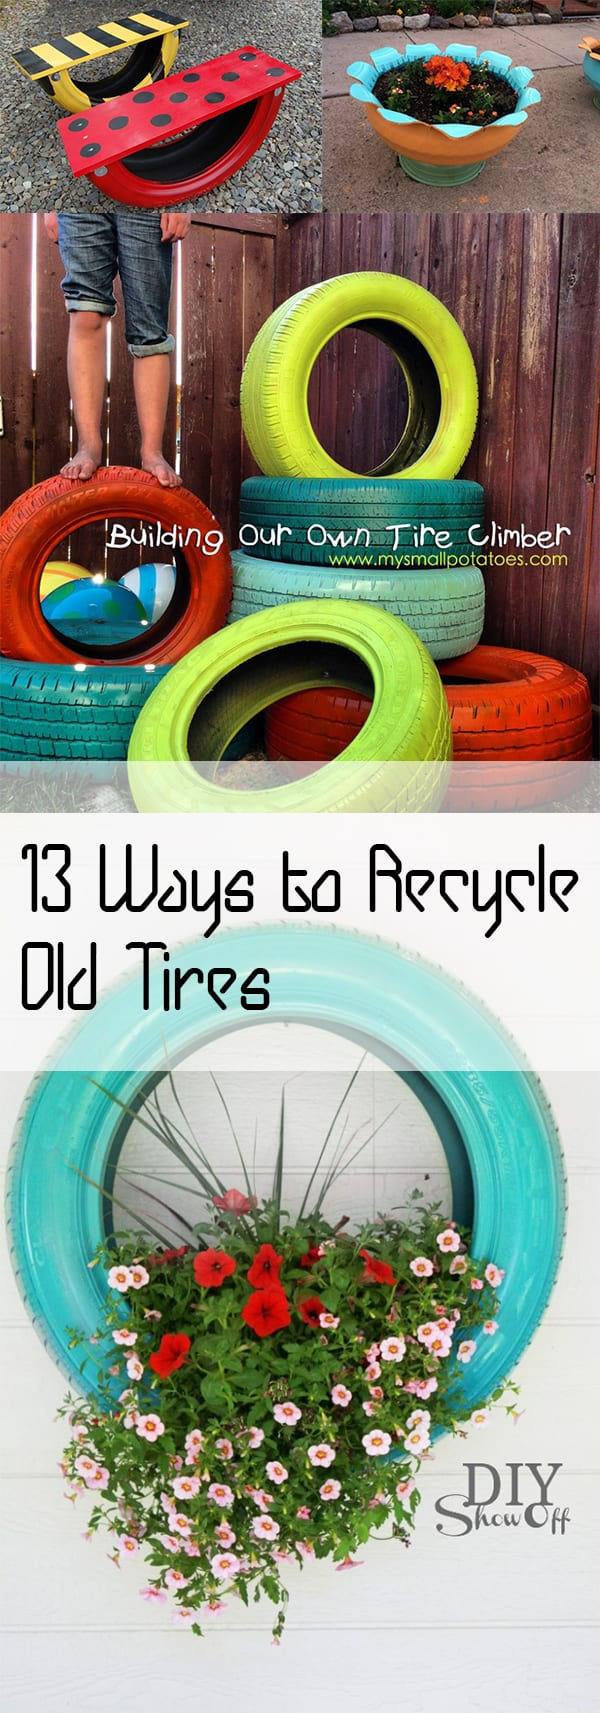 13 ways to recycle old tires how to build it - What to make with old tires ...